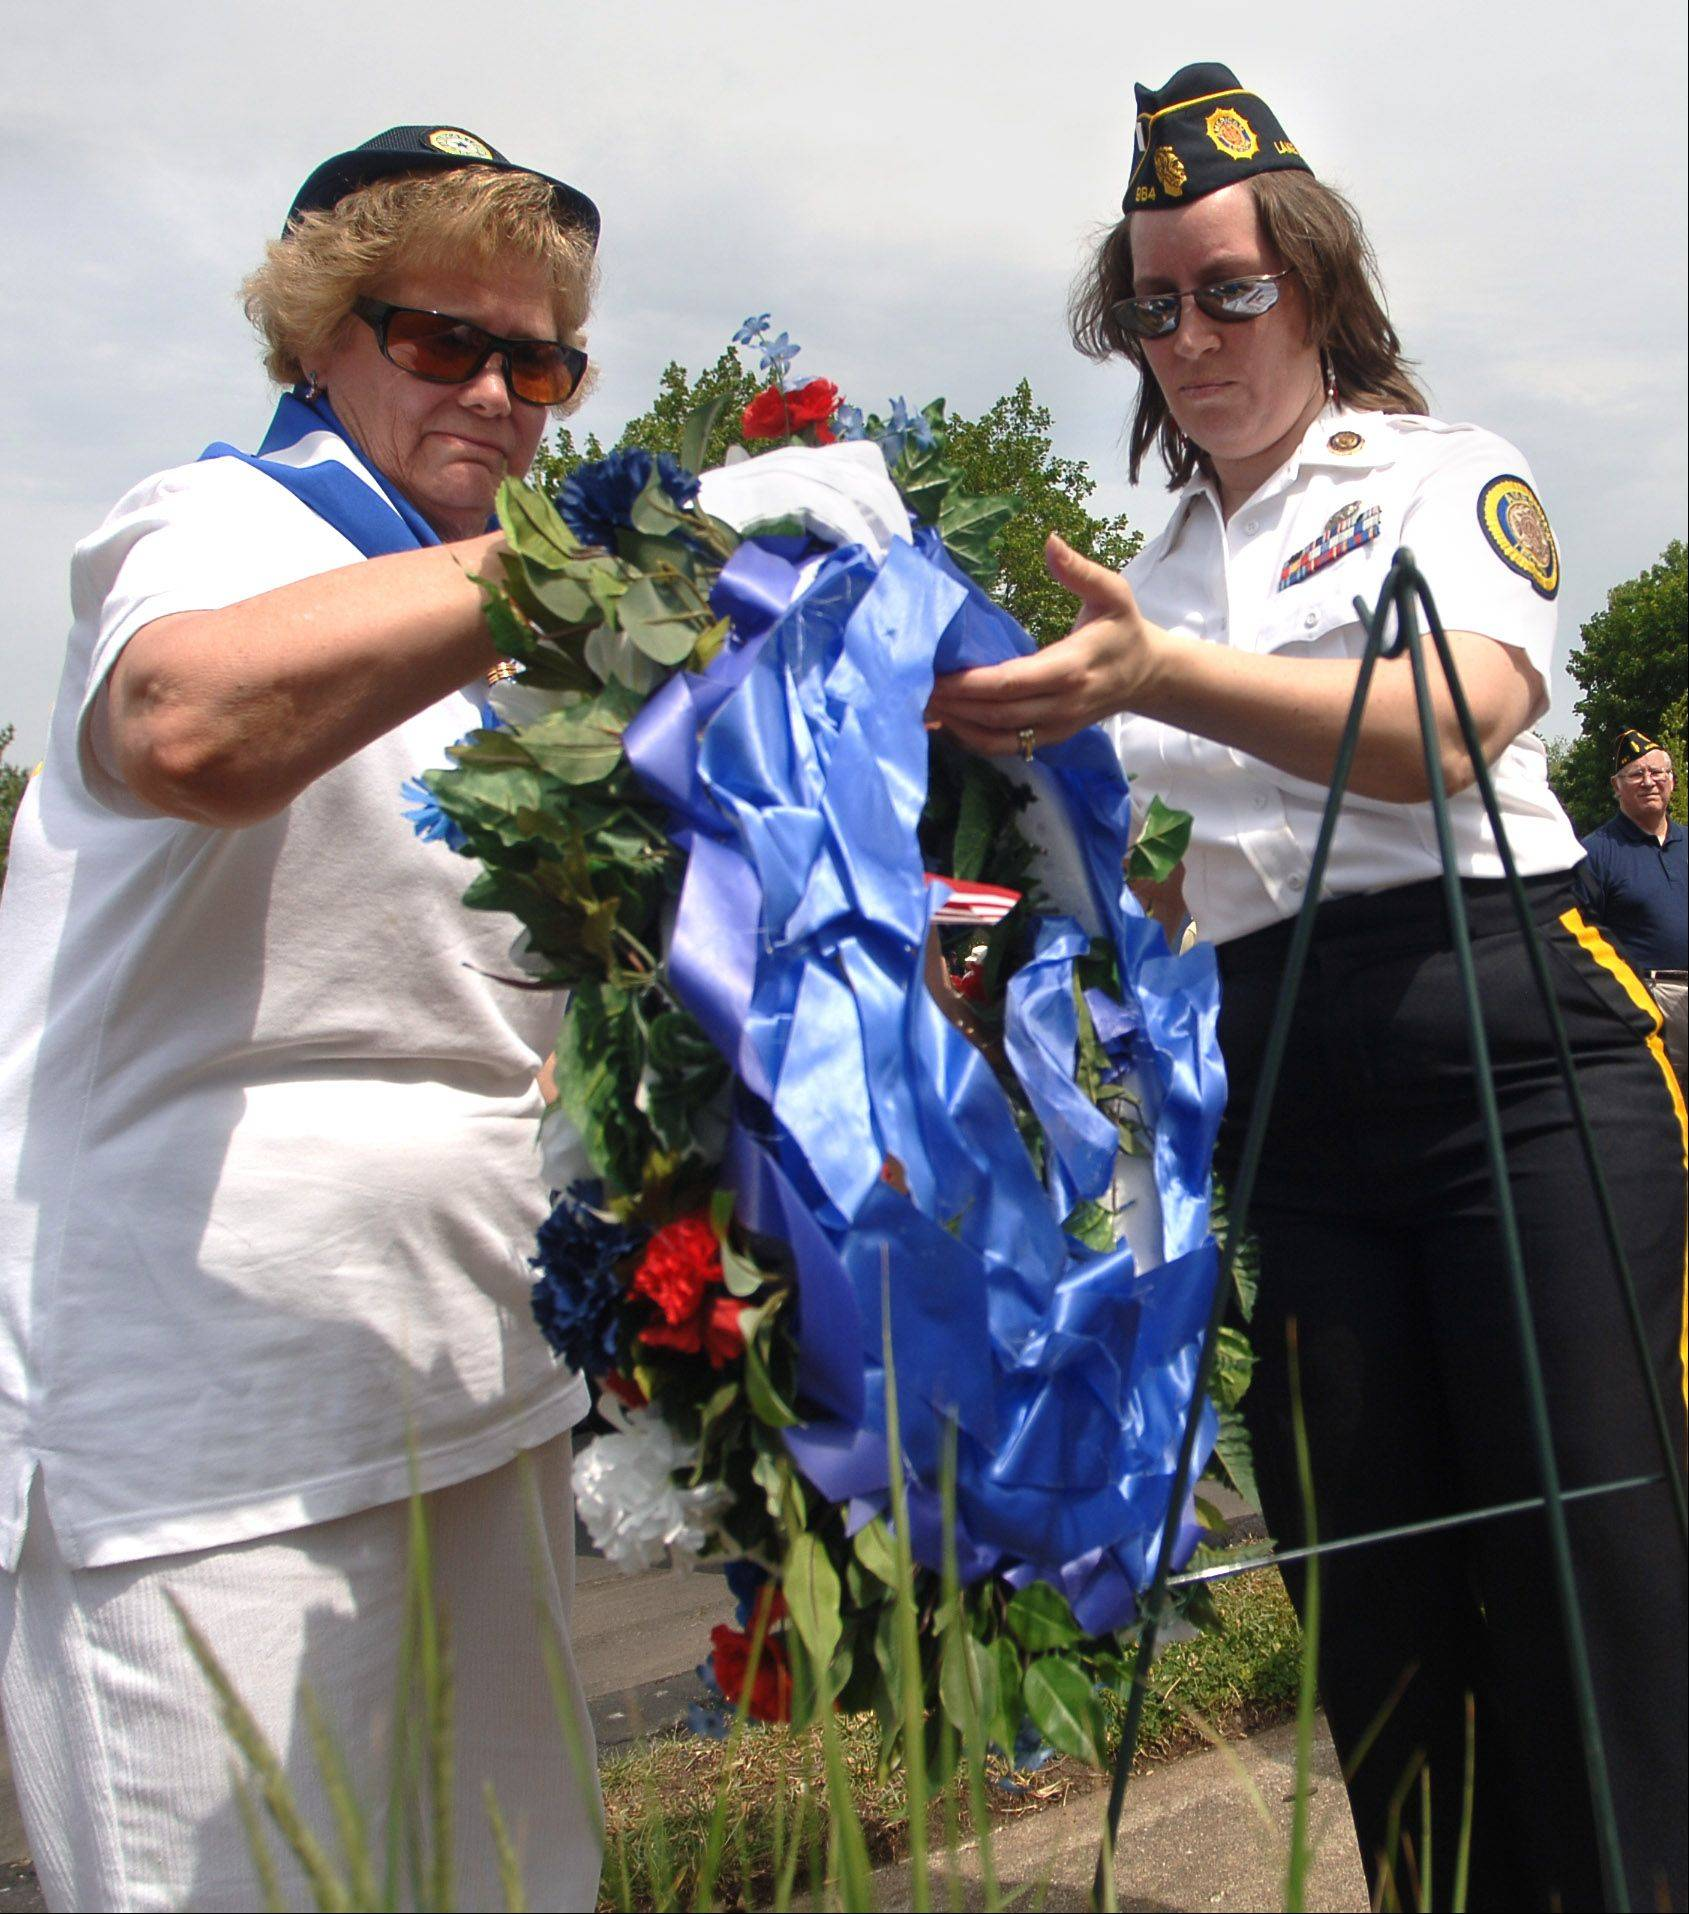 Nancy Konz, left, with the Mundelein American Legion Post 867 Auxiliary, and Victoria McConville, with the Lake Zurich American Legion Post 964, present the wreath during Monday's Memorial Day ceremony.